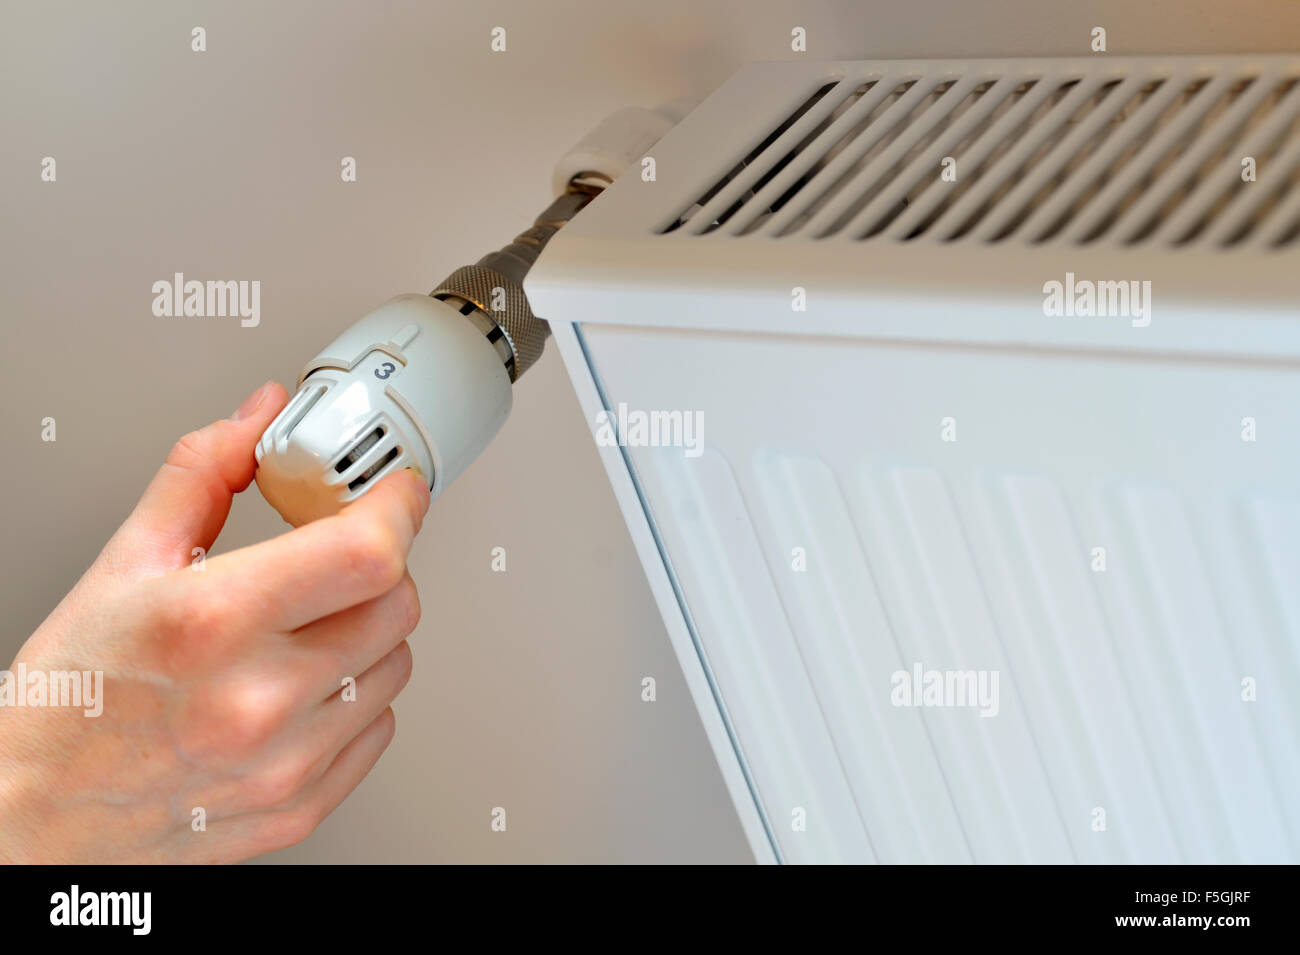 Individual Room Temperature Control Stock Photos Controller Womans Hand Adjusting Thermostat In Winter Time Image